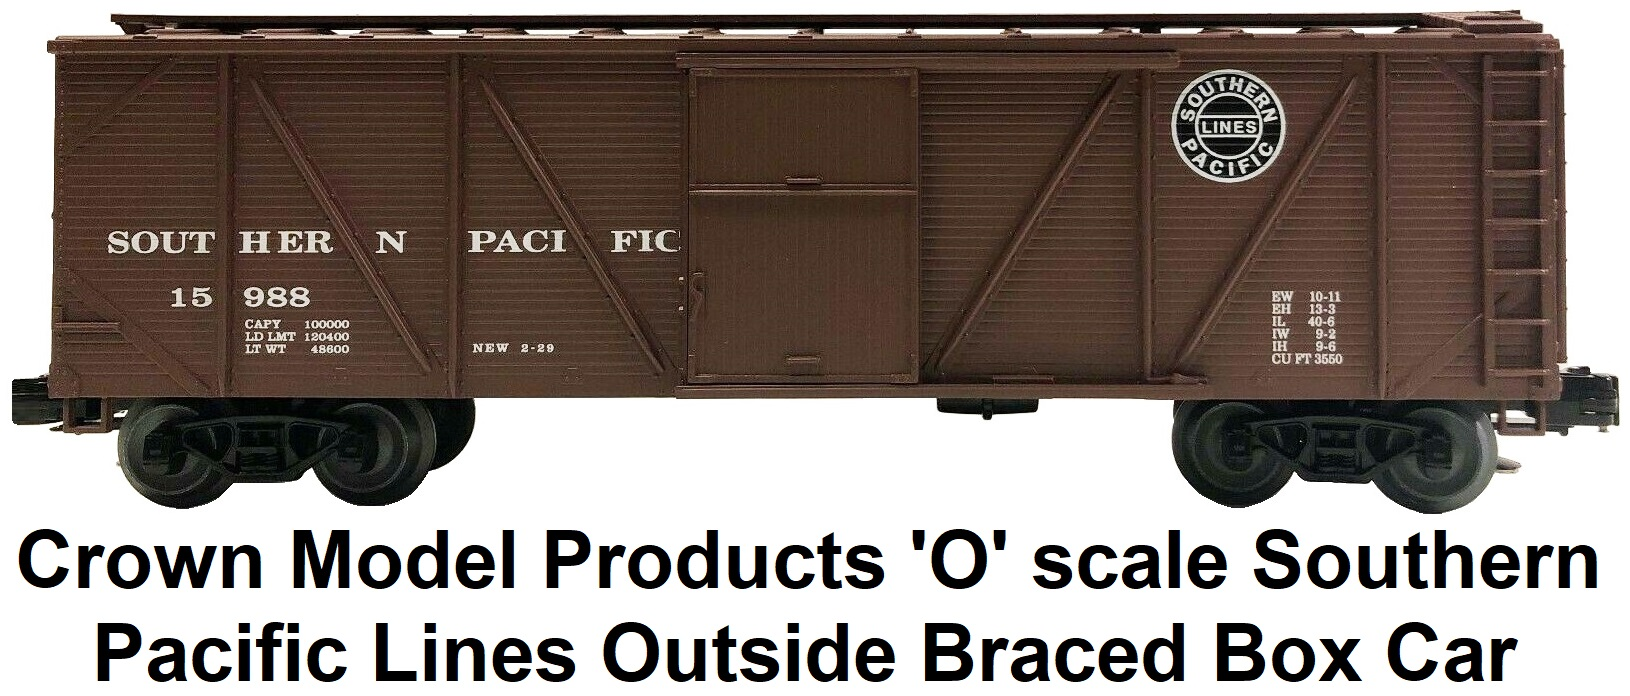 Crown Model Products 'O' scale Southern Pacific Lines Outside Braced Wood Box Car